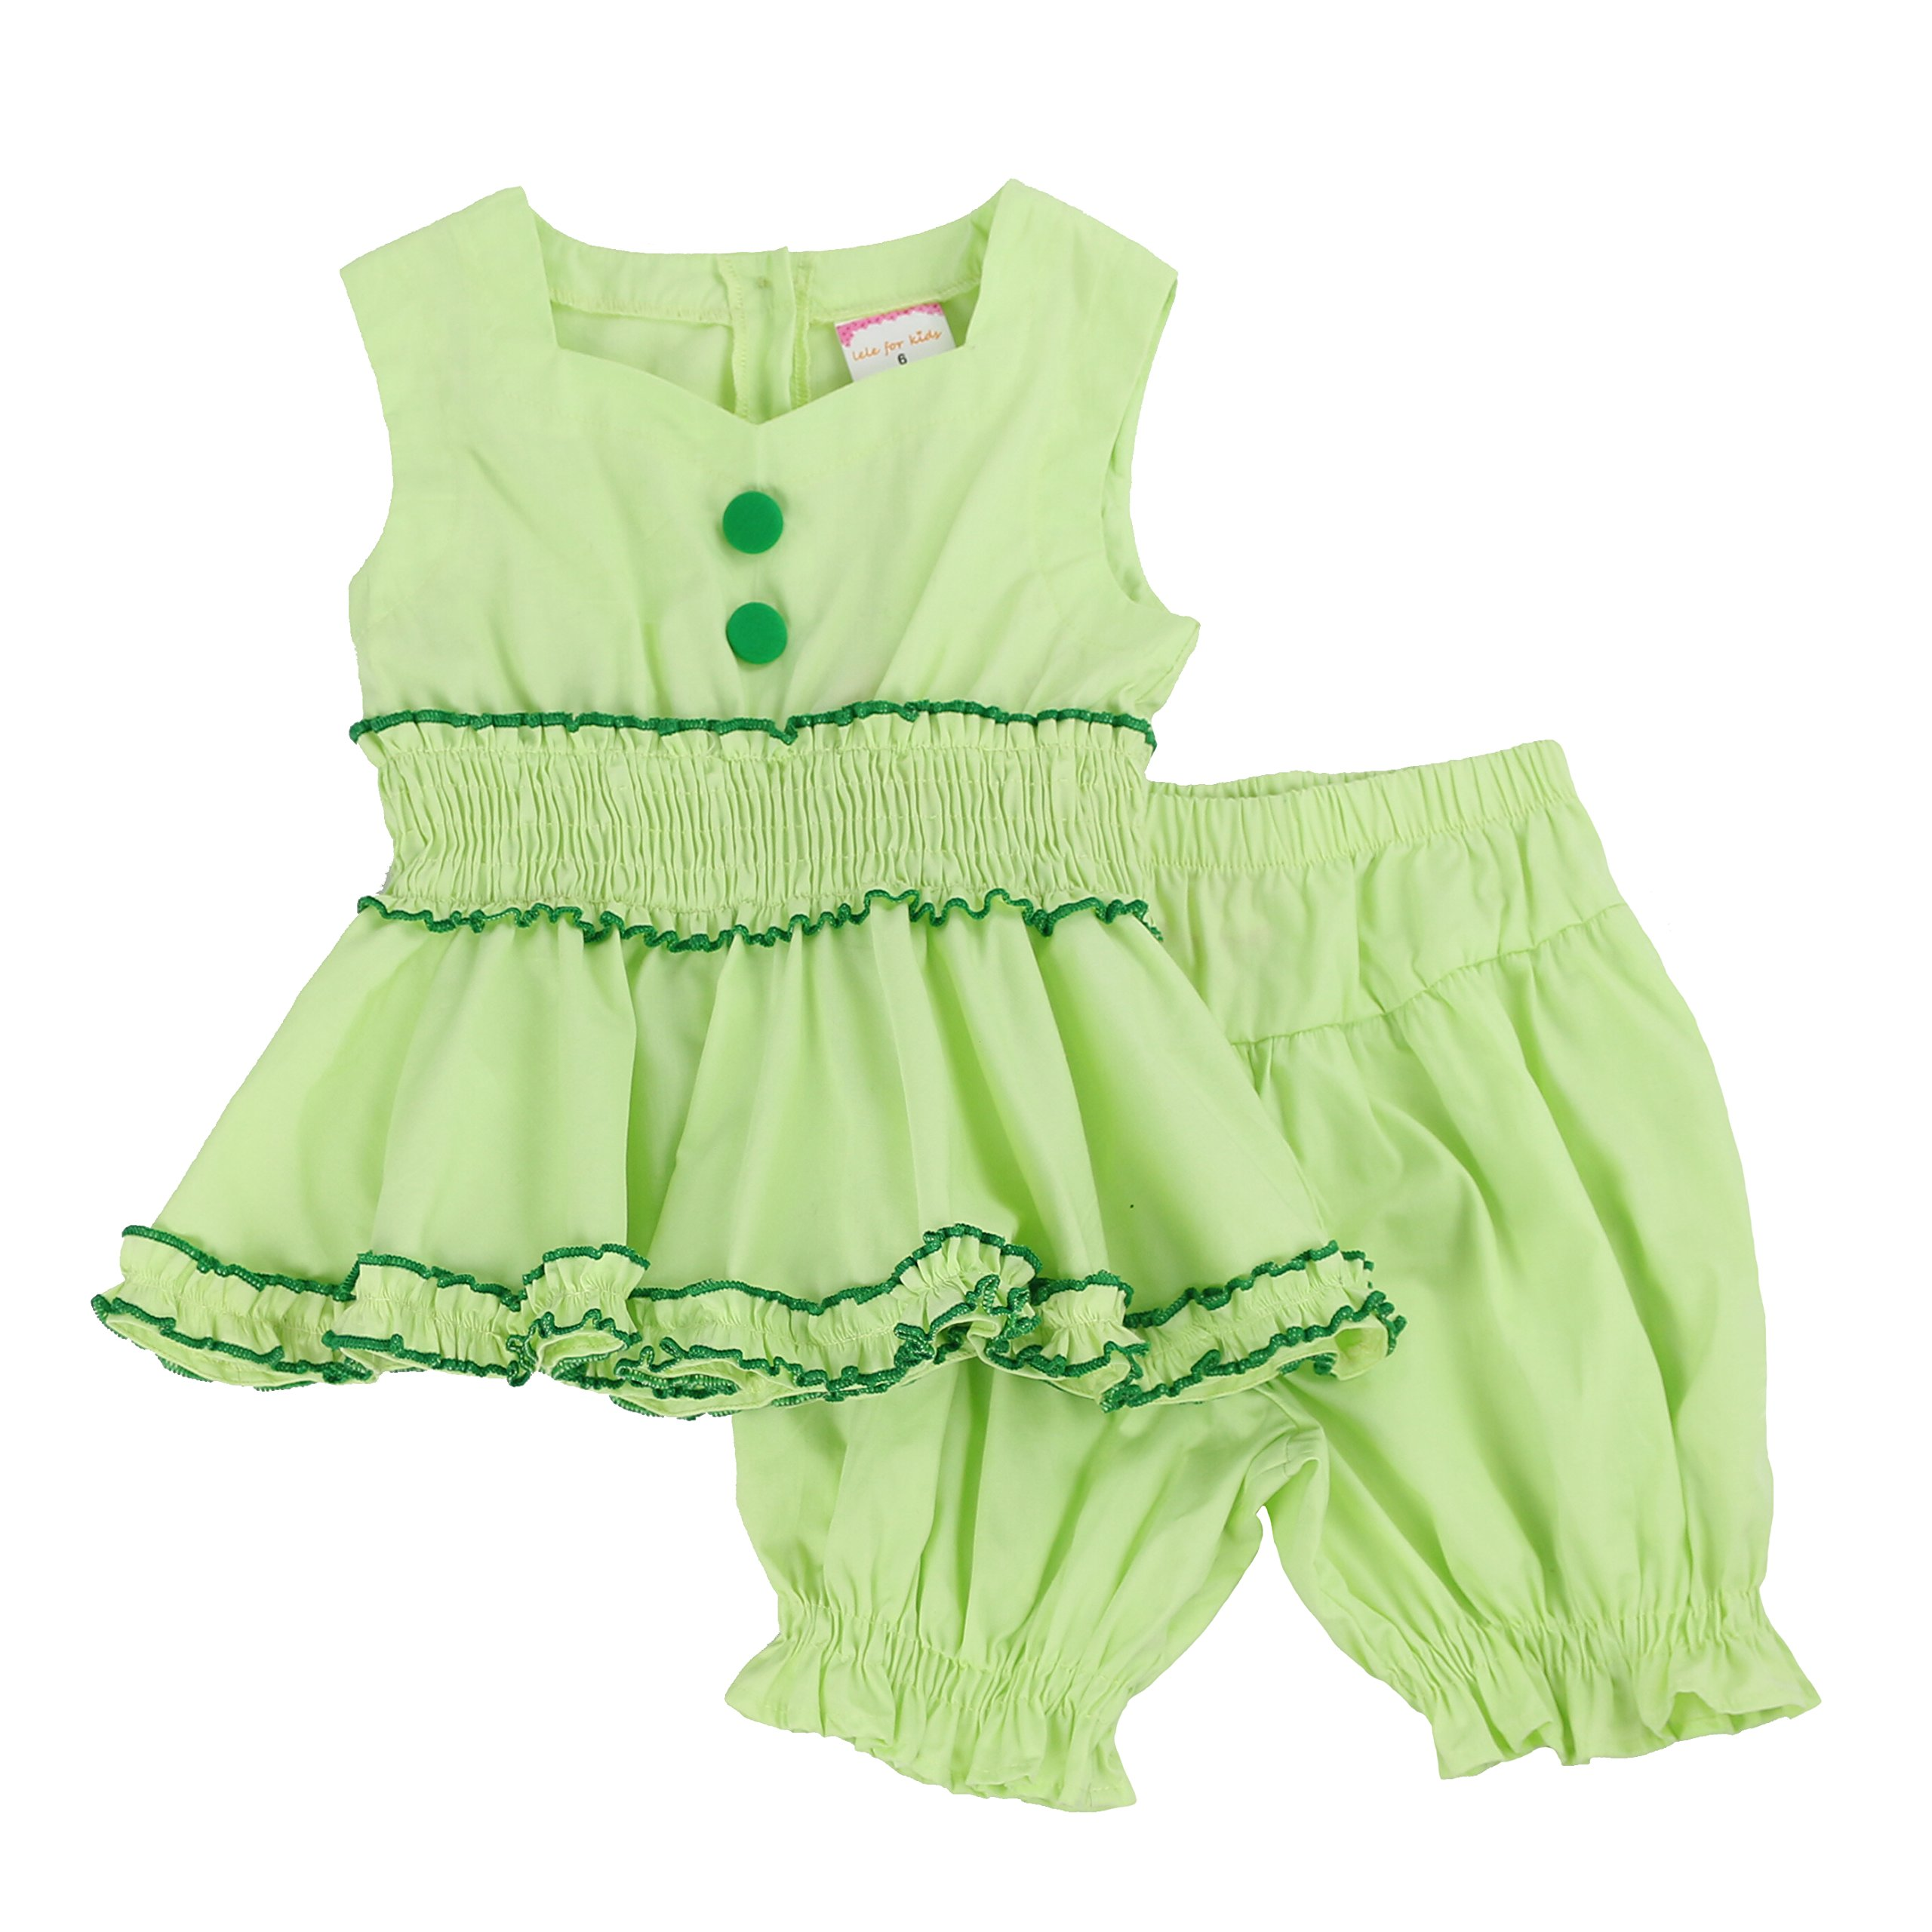 LELEFORKIDS - Toddlers and Girls Ozzy Babe Ruffled Bloomer Short Set in Lime Green 4T